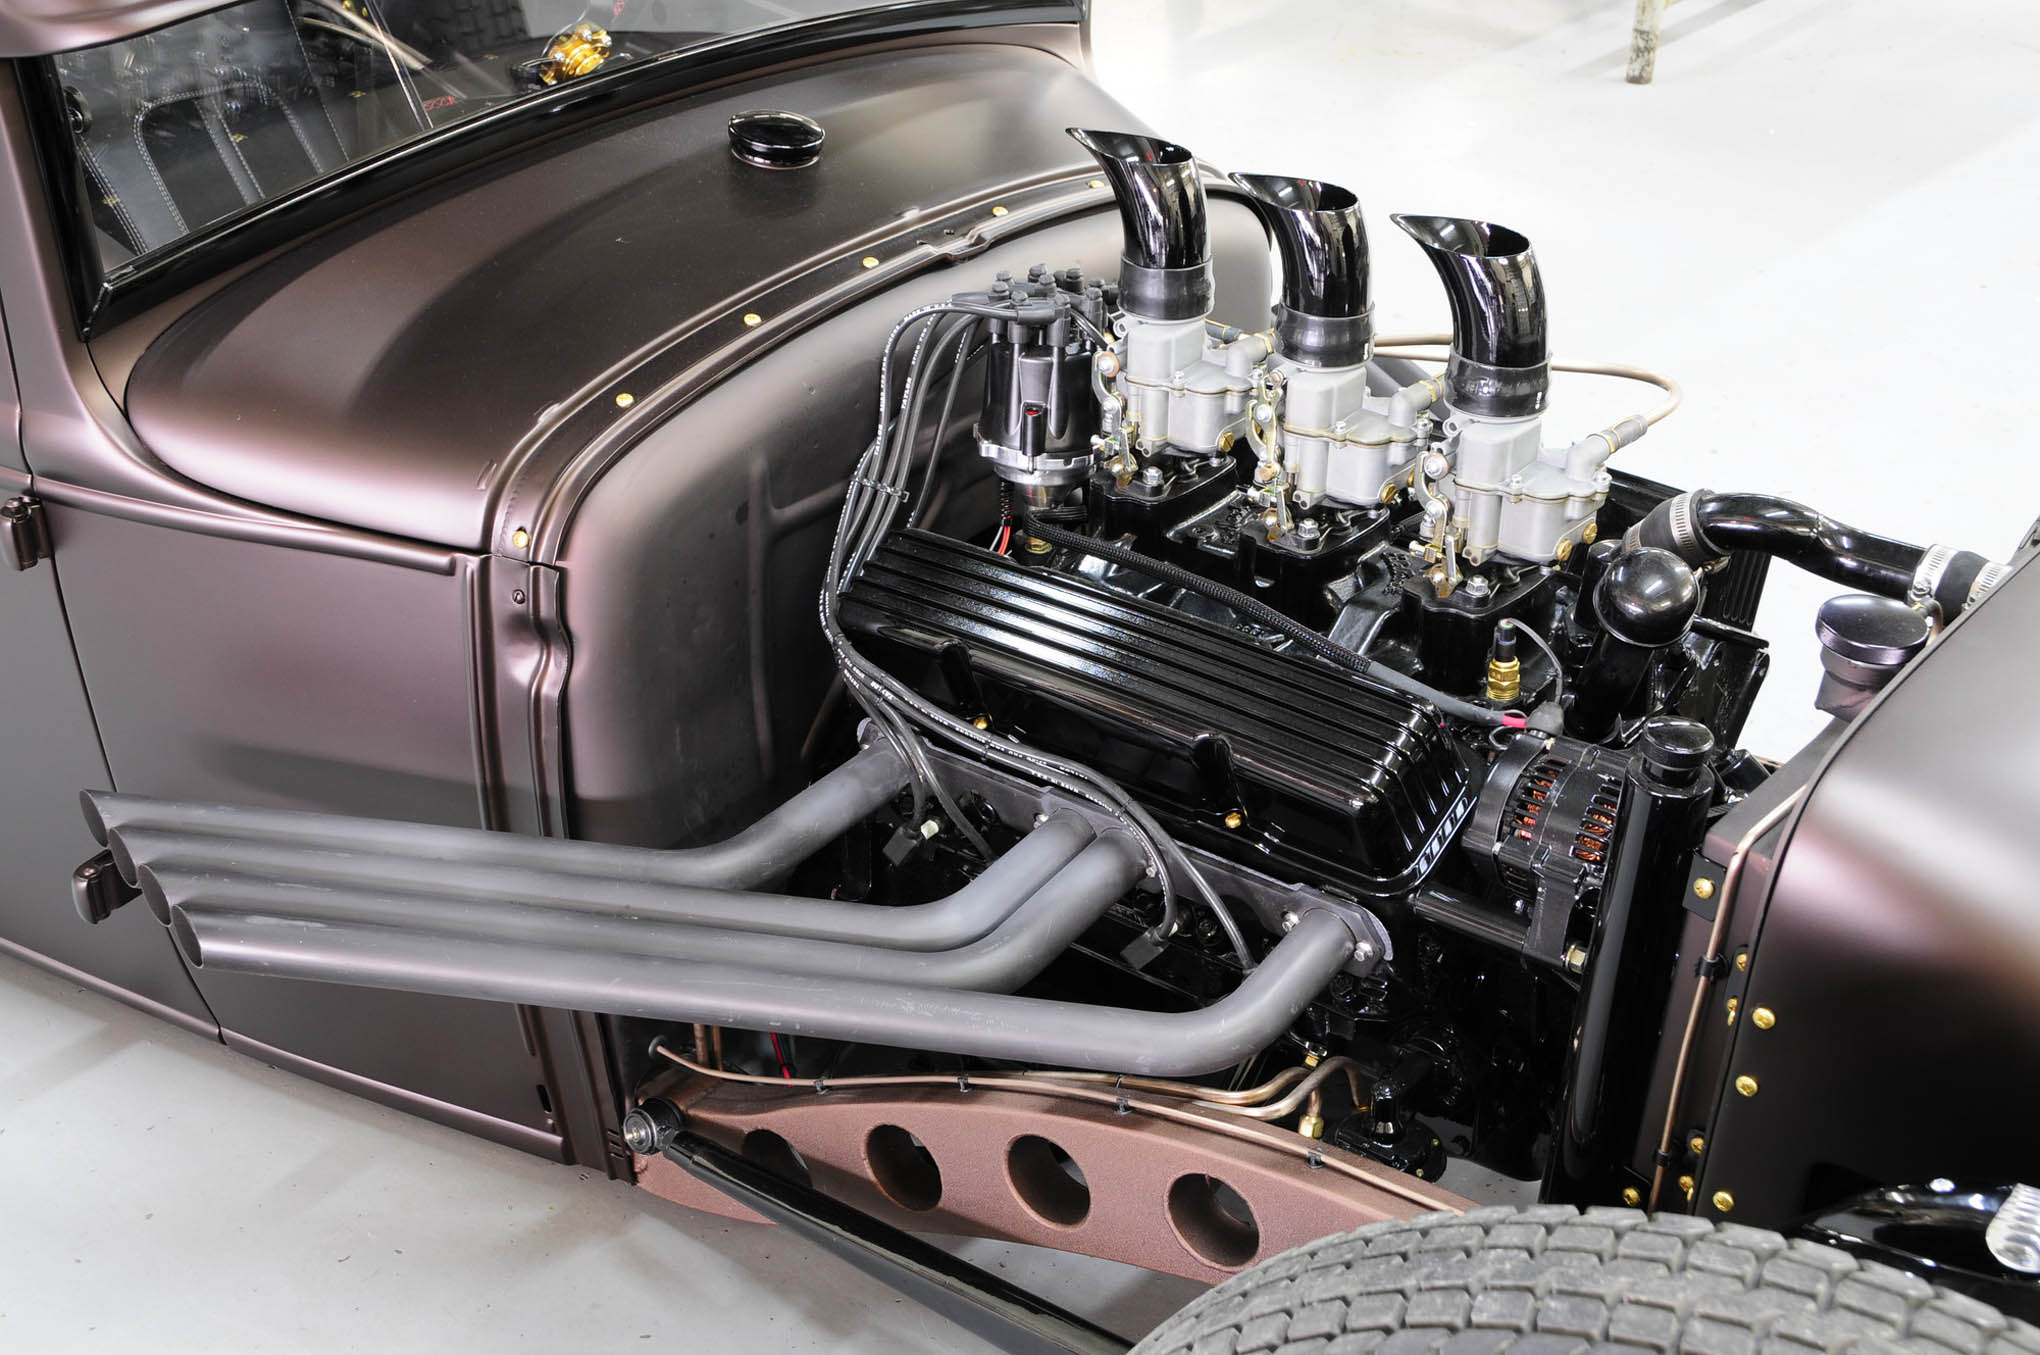 For power a 350ci Chevy small-block was coated in black and topped with an Edelbrock three-deuce intake wearing Stromberg 97 carbs. Attention to detail includes black finned aluminum valve covers, custom air cleaners and expertly laid out brass lines and mounting hardware.